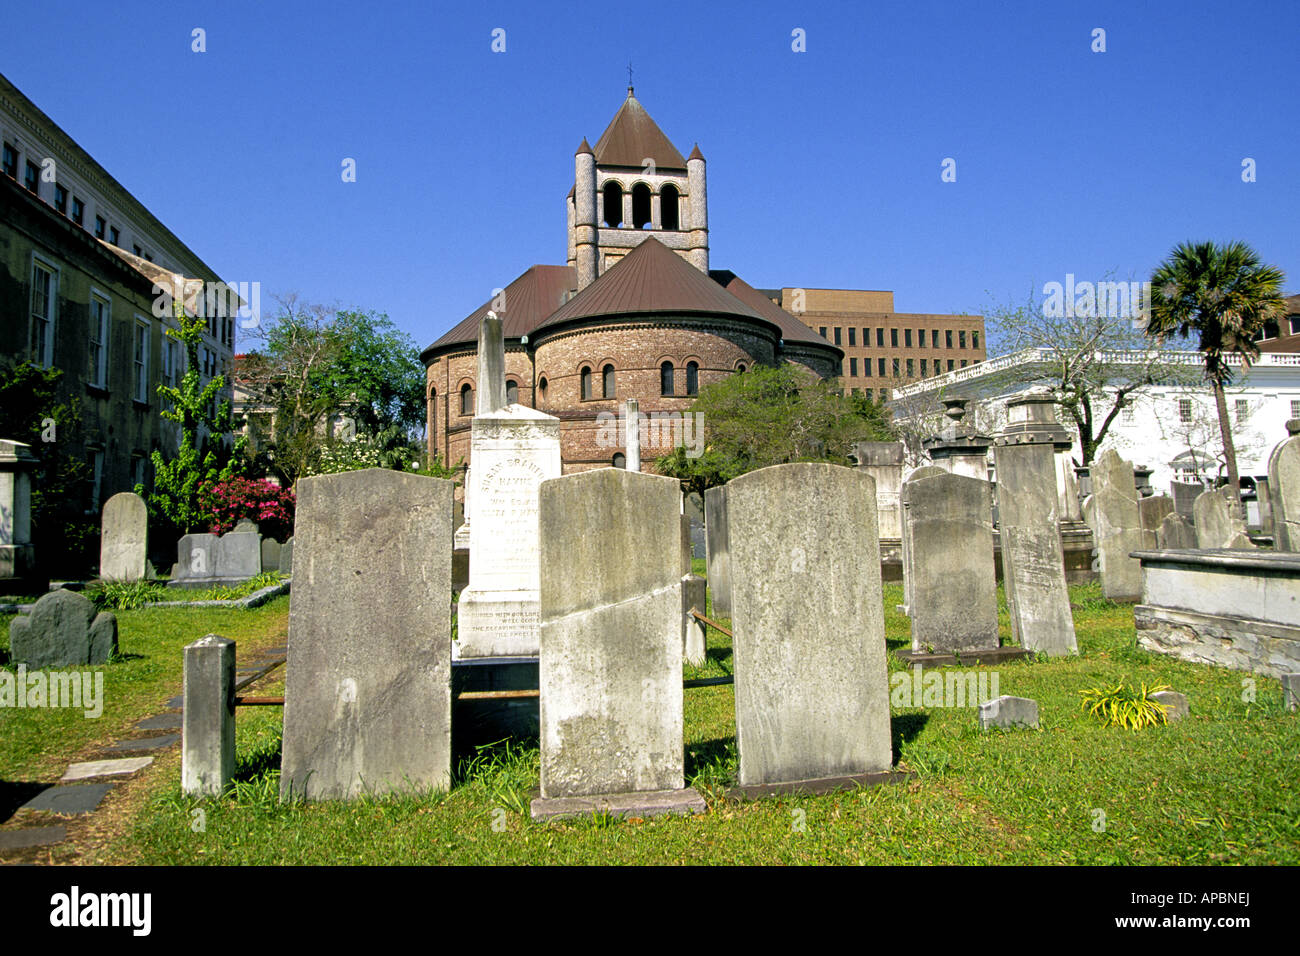 A cemetary and historic church in the historic district of Charleston - Stock Image